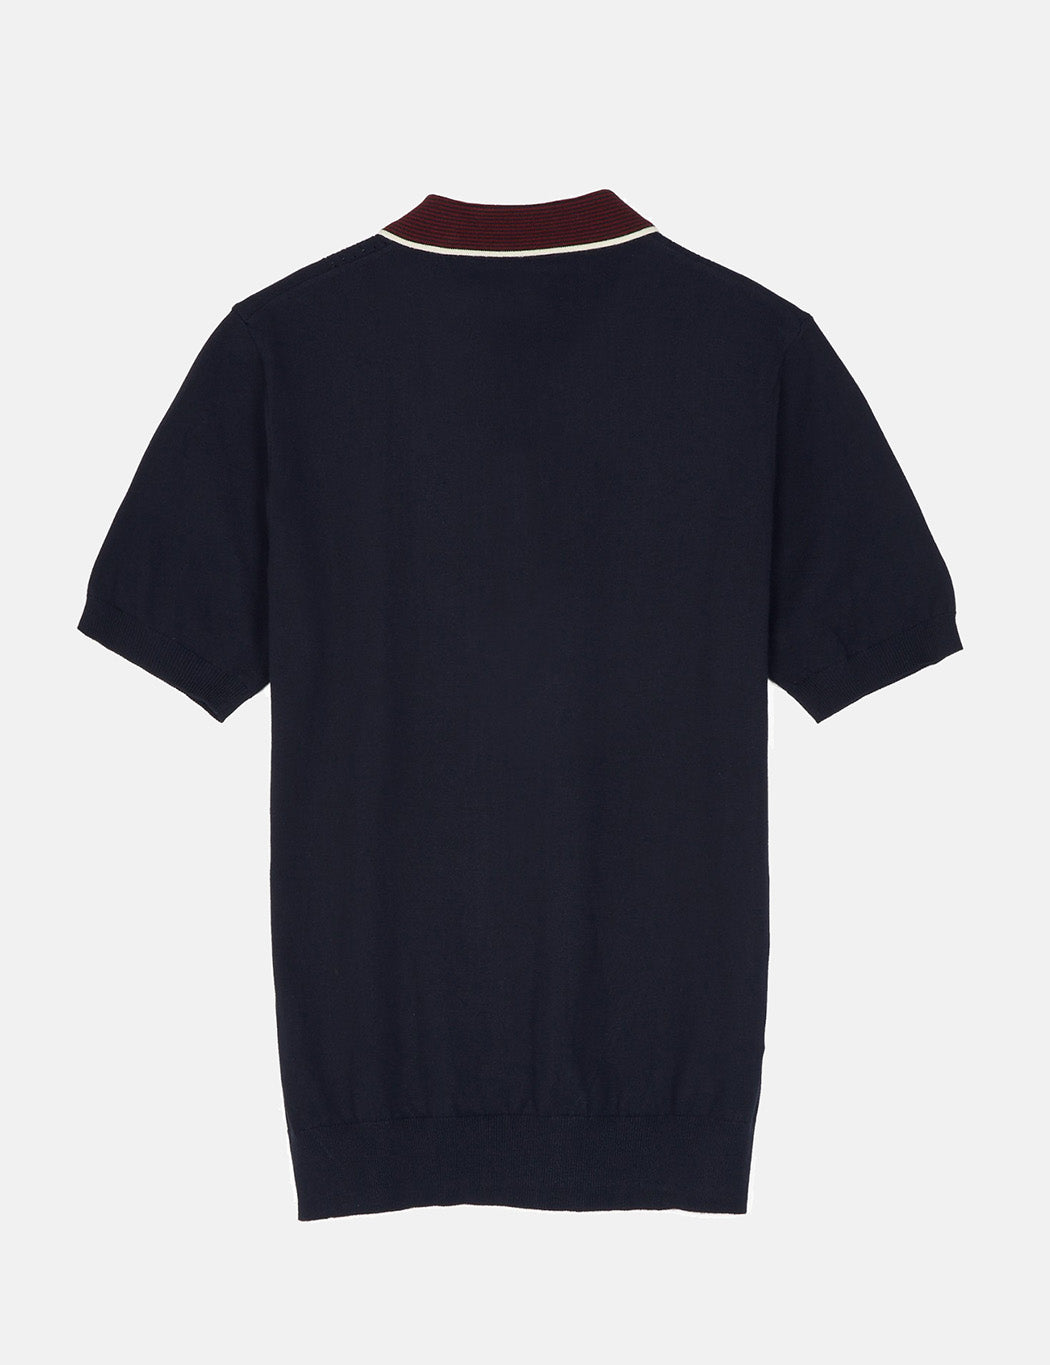 Fred Perry Pointelle Knit Shirt - Navy Blue